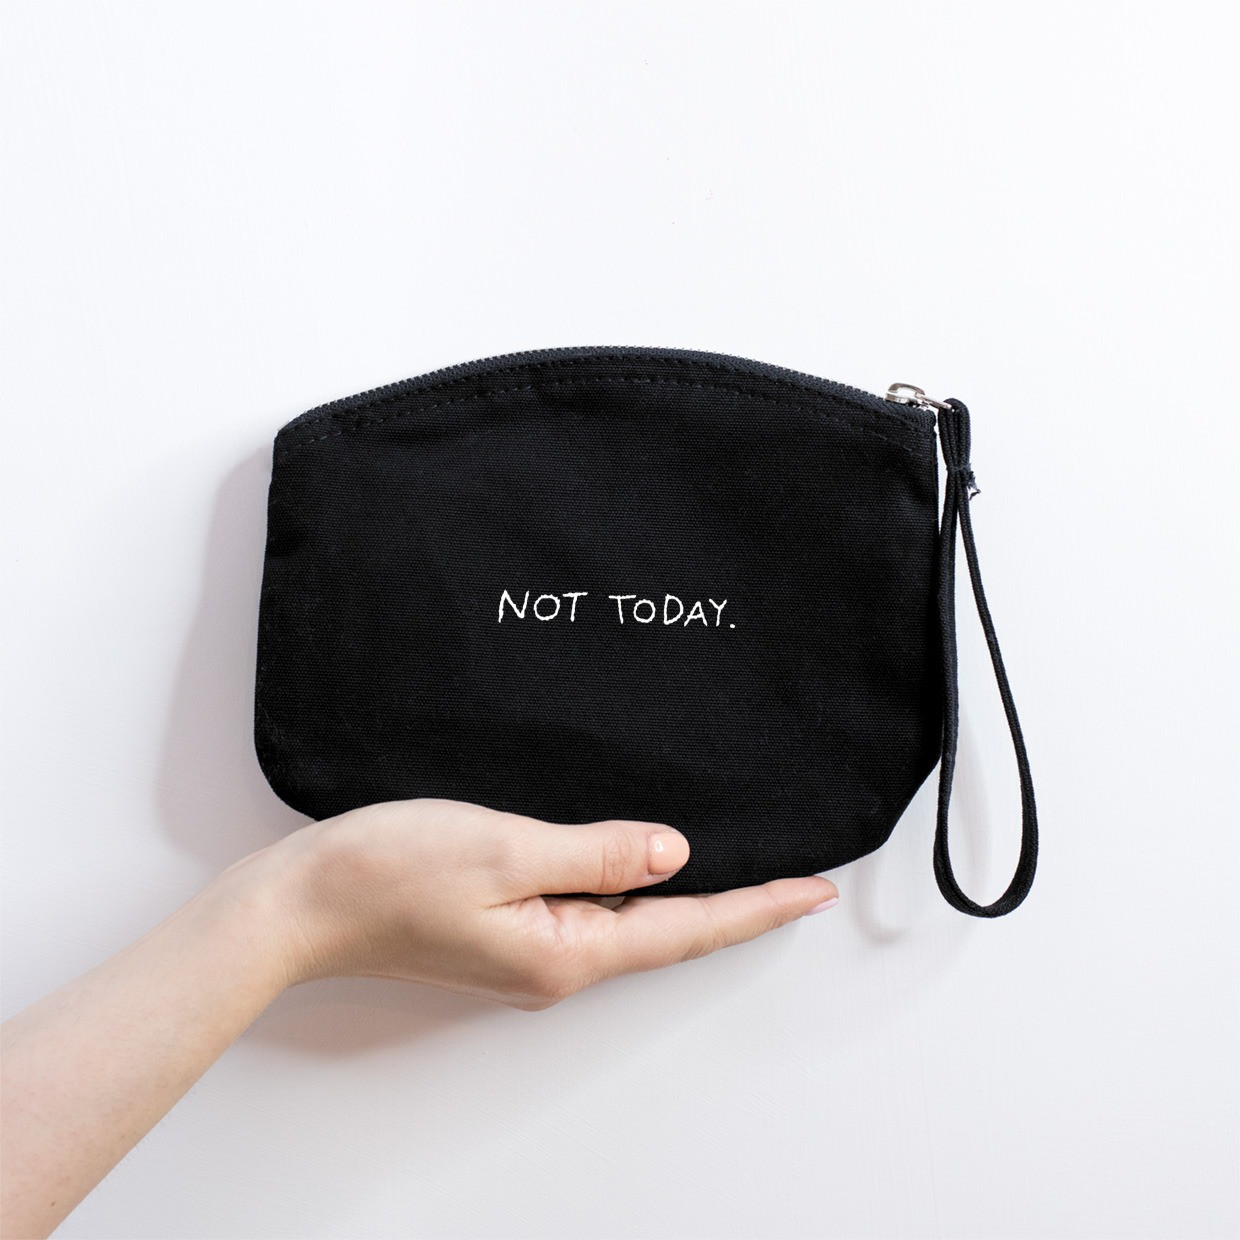 The ZIPPED POUCH M - Not Today